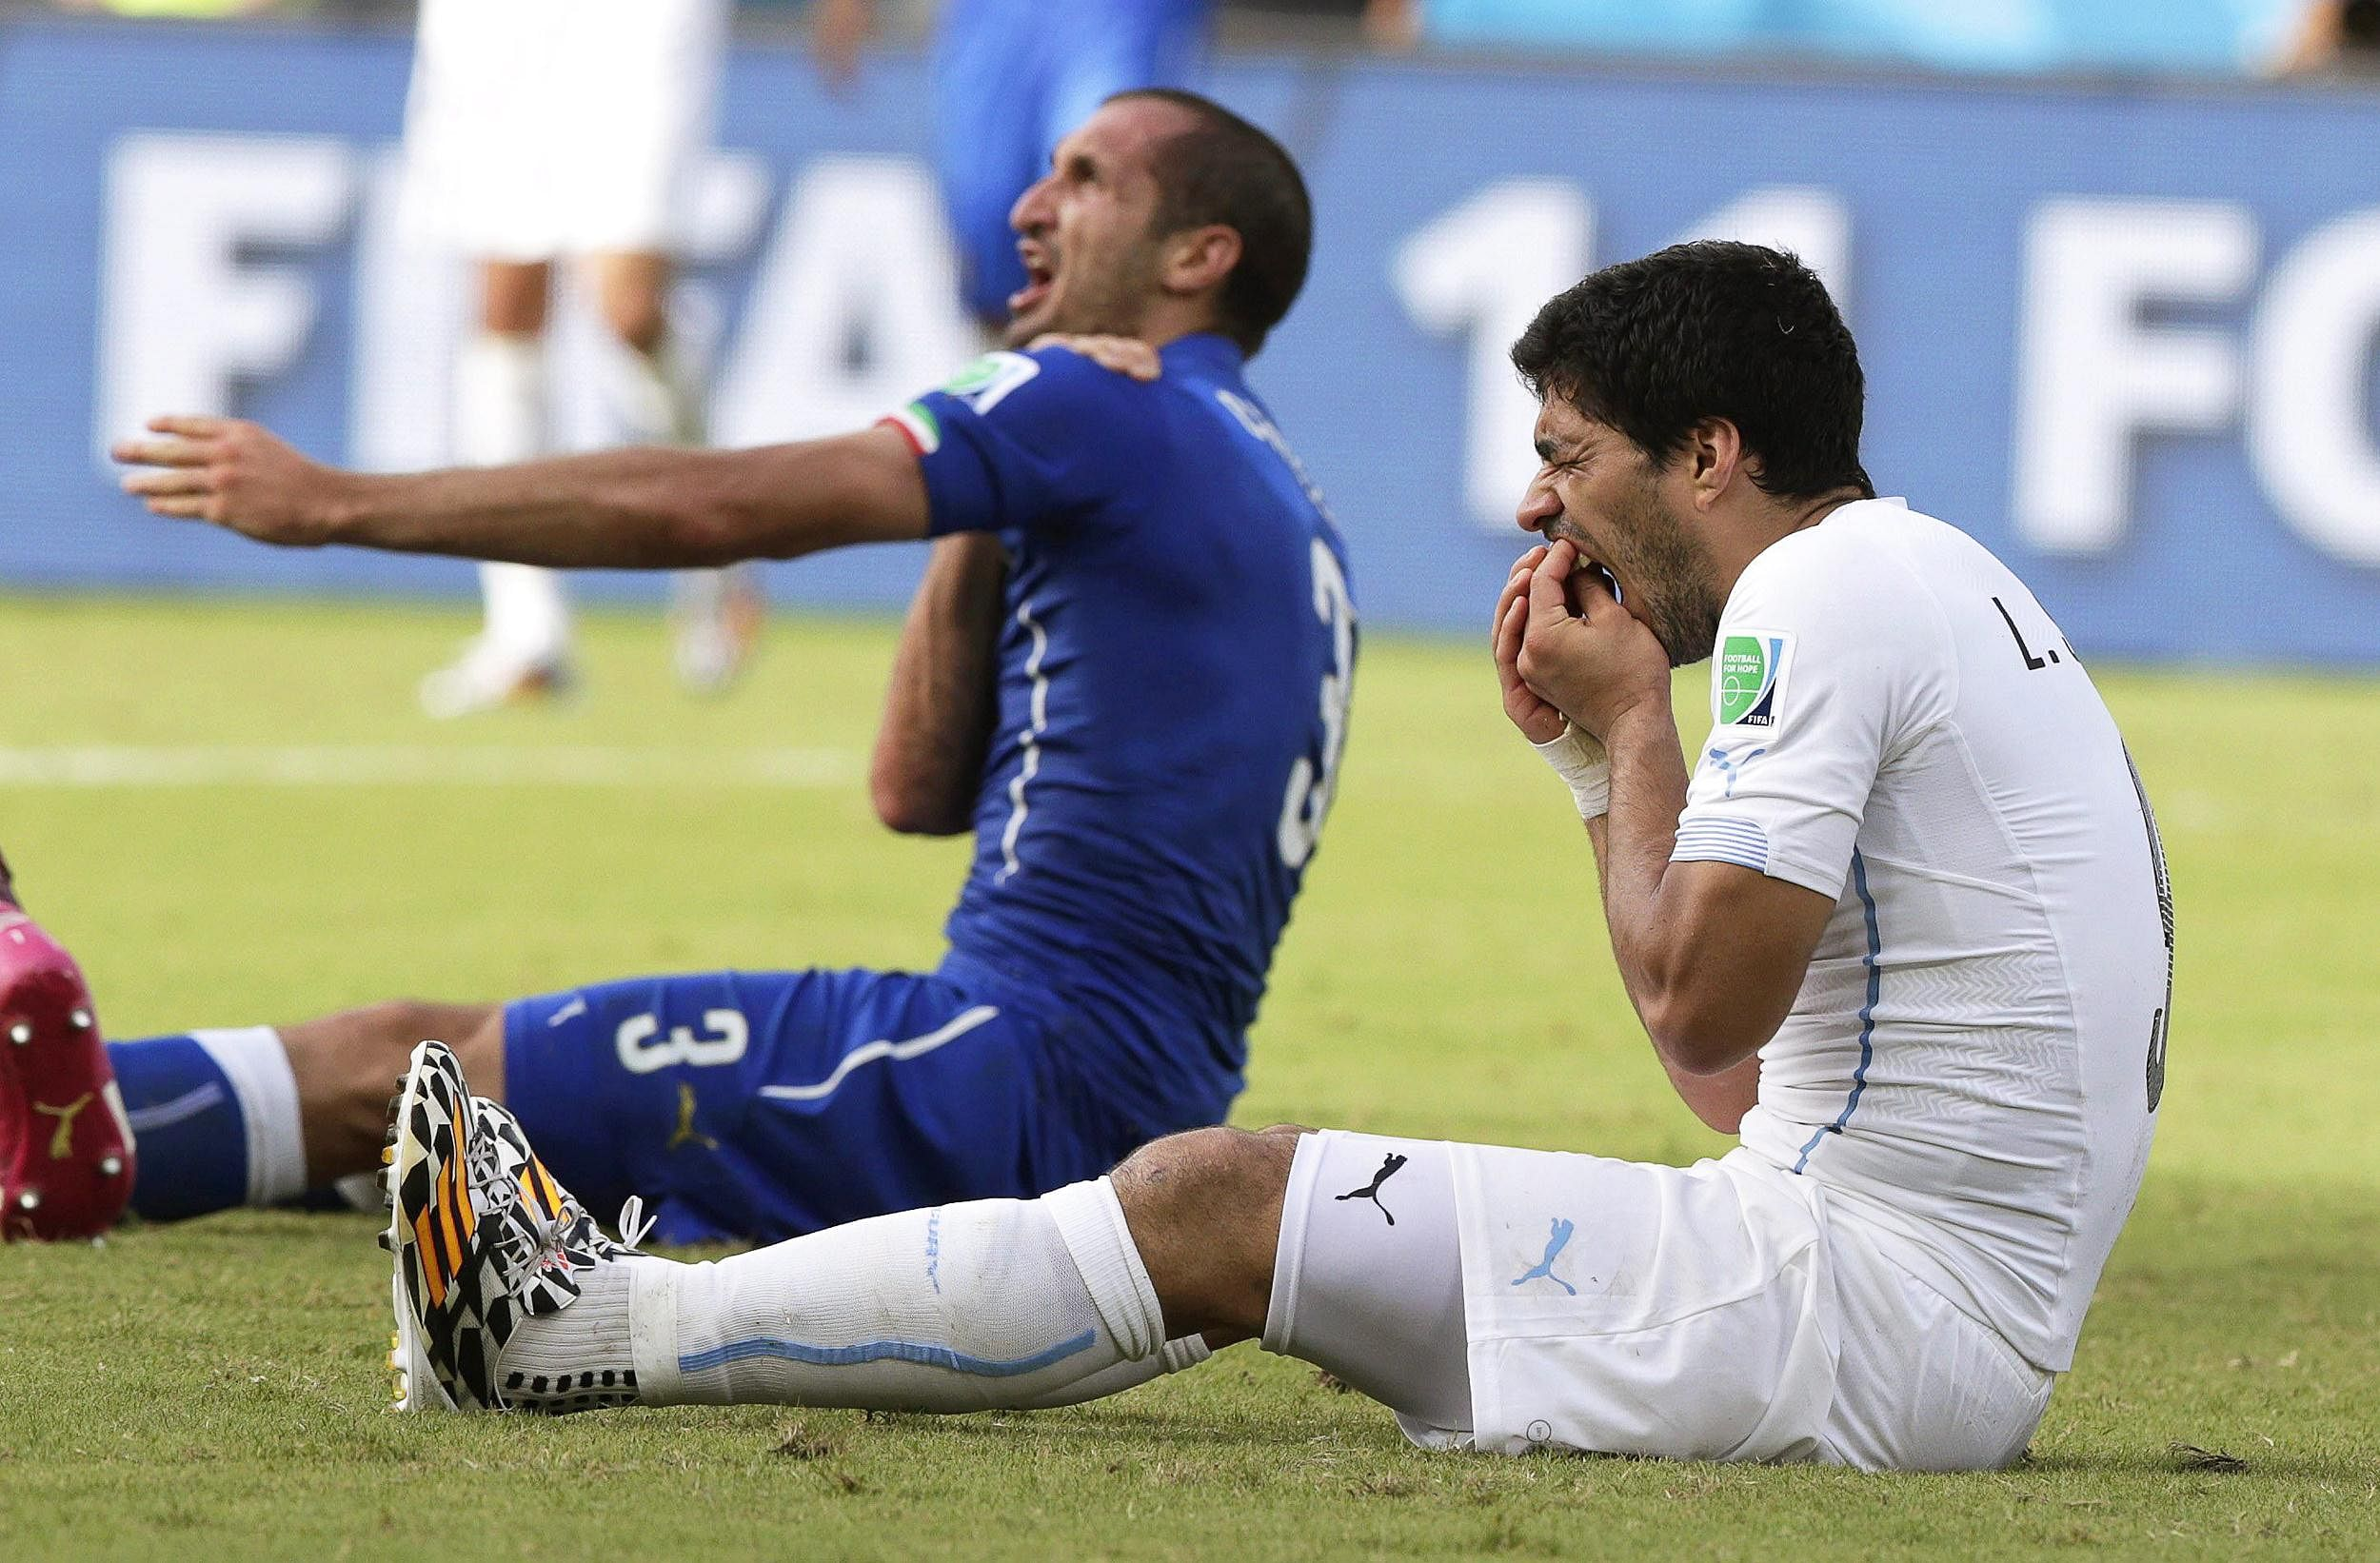 Luis Suarez finally reveals why he bites people